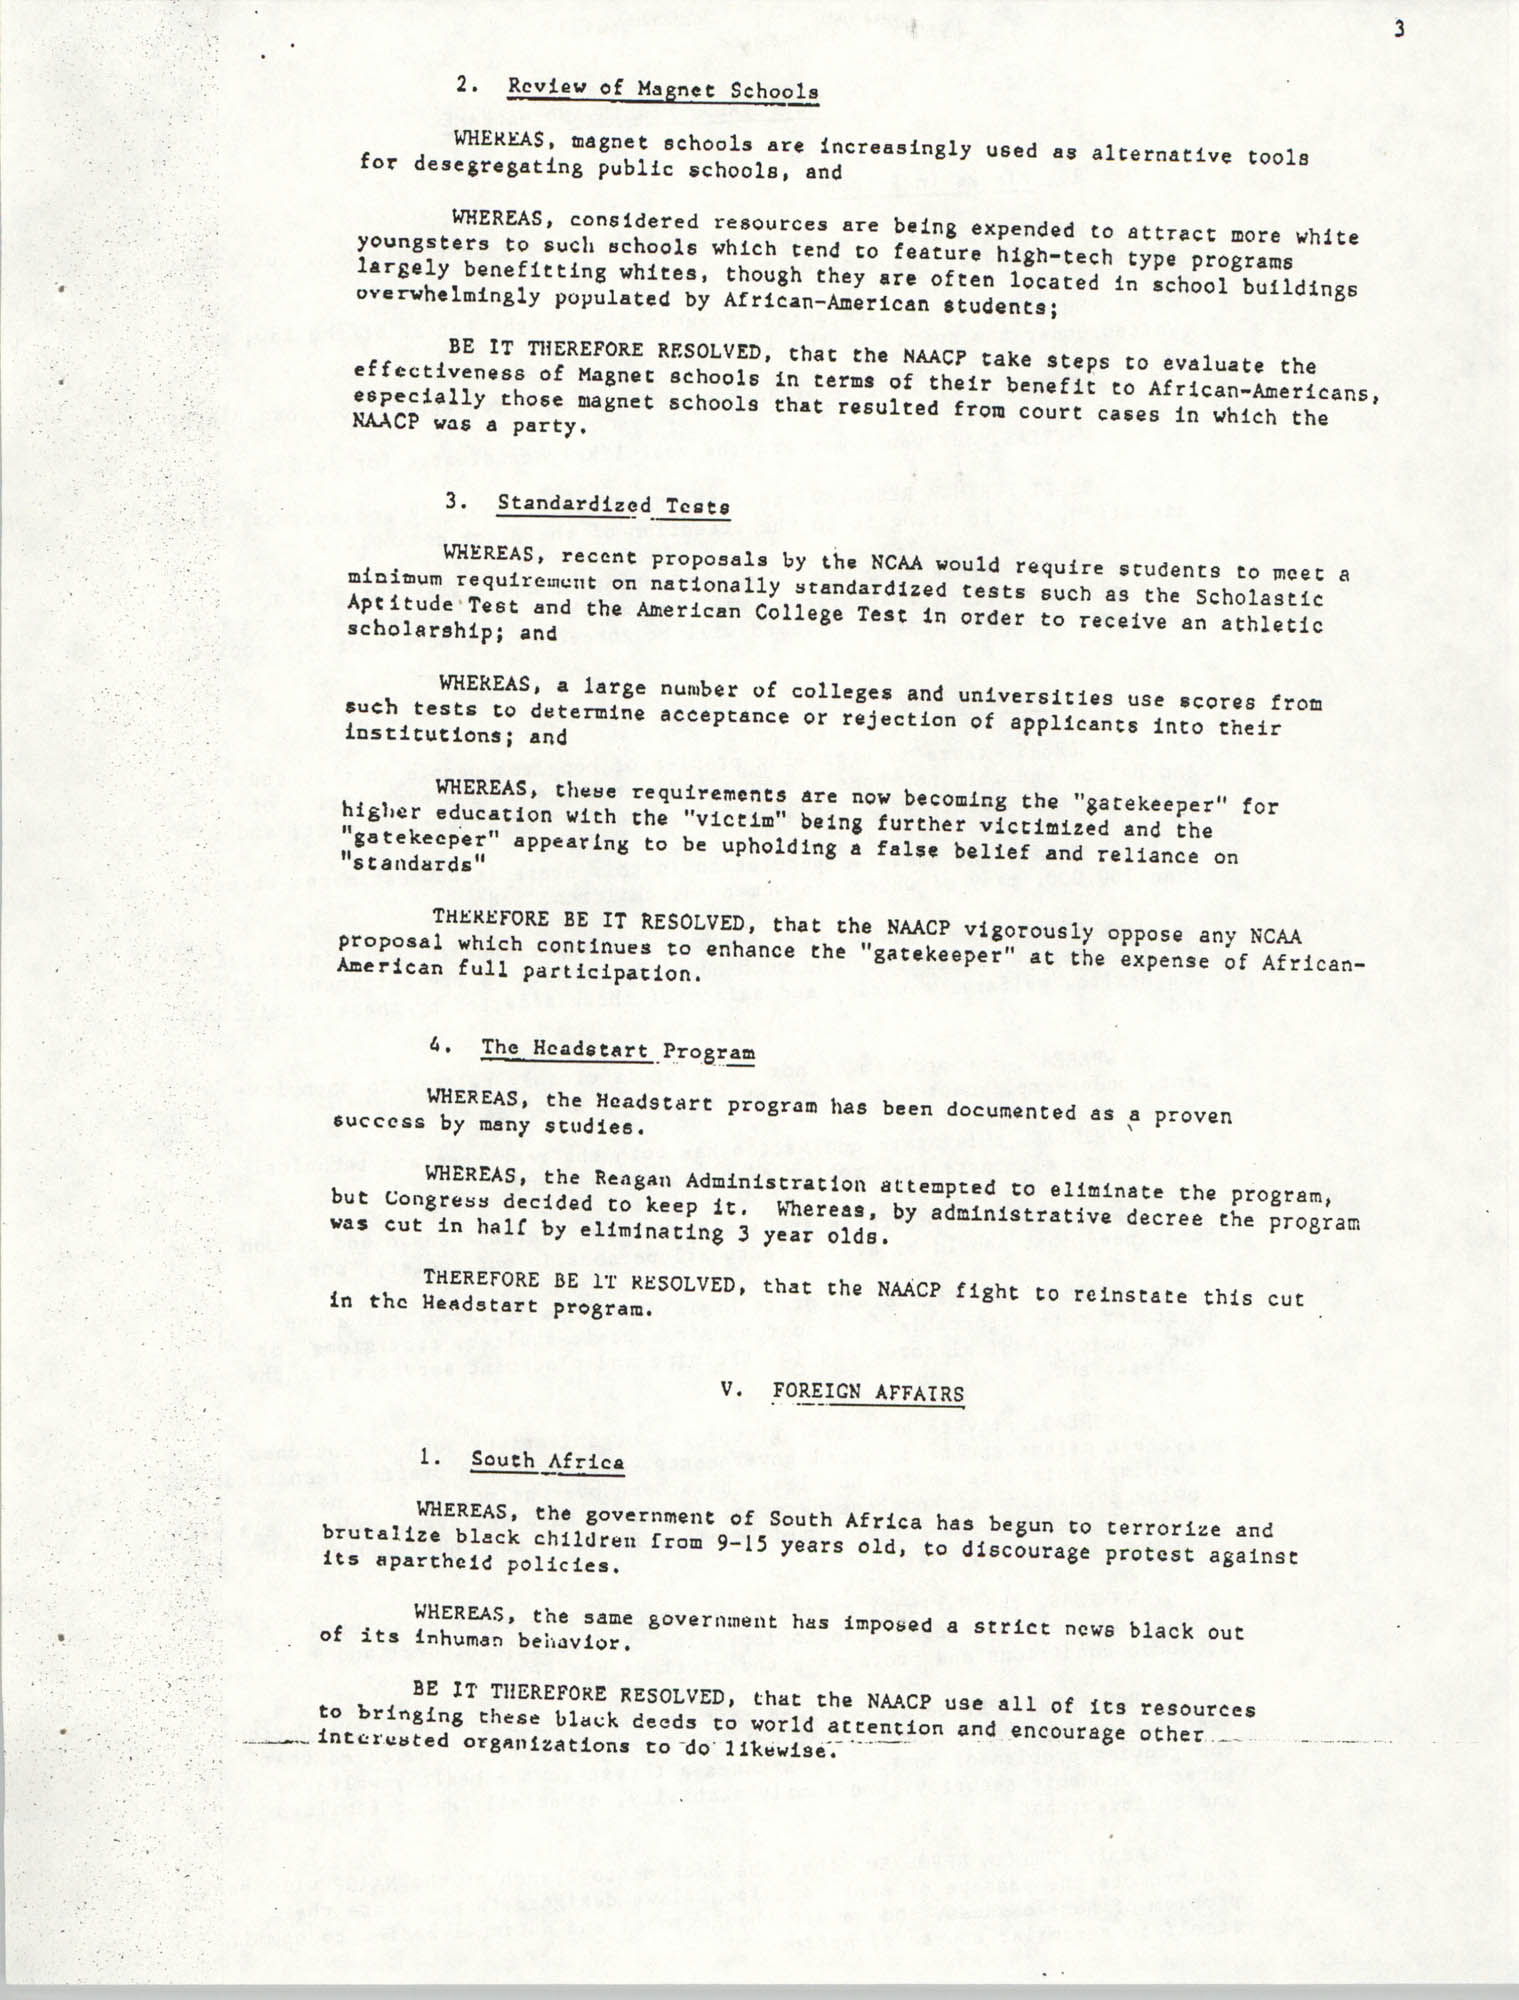 Resolutions Submitted Under Article X, Section 2 of the Constitution of the NAACP, Page 3